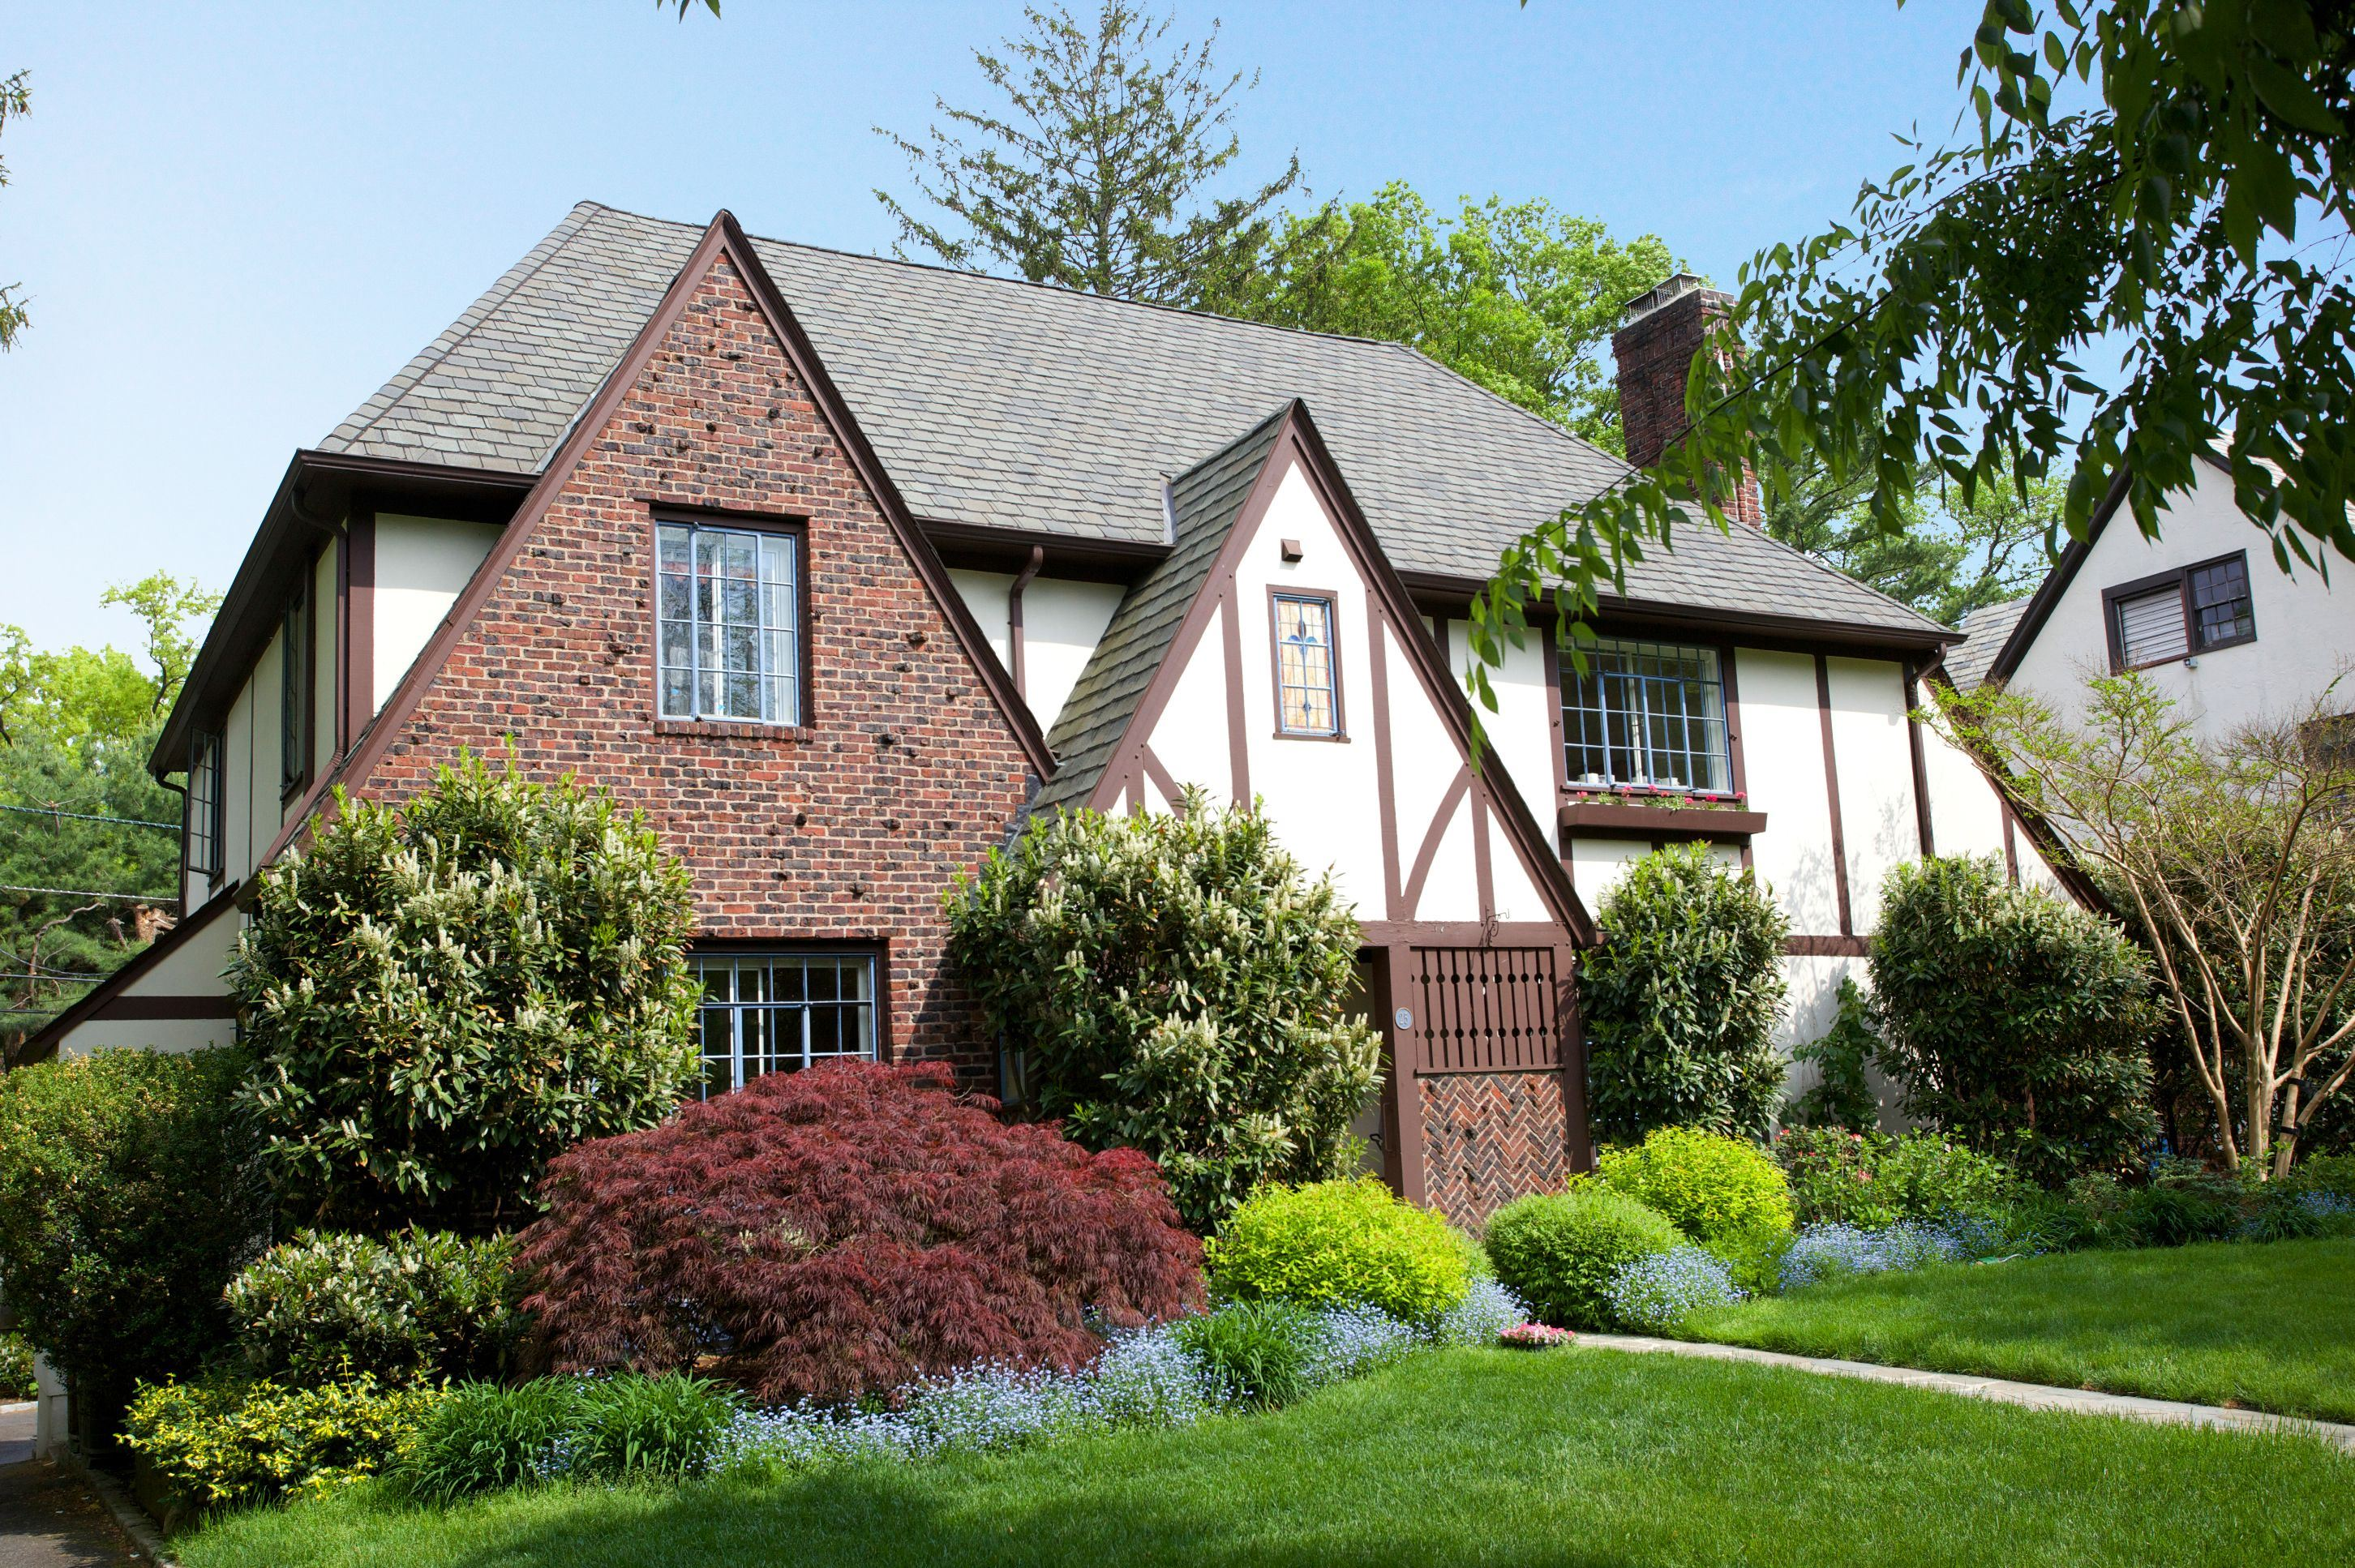 Maison unifamiliale pour l Vente à Light Filled Tudor 25 The Fairway Montclair, New Jersey 07043 États-Unis